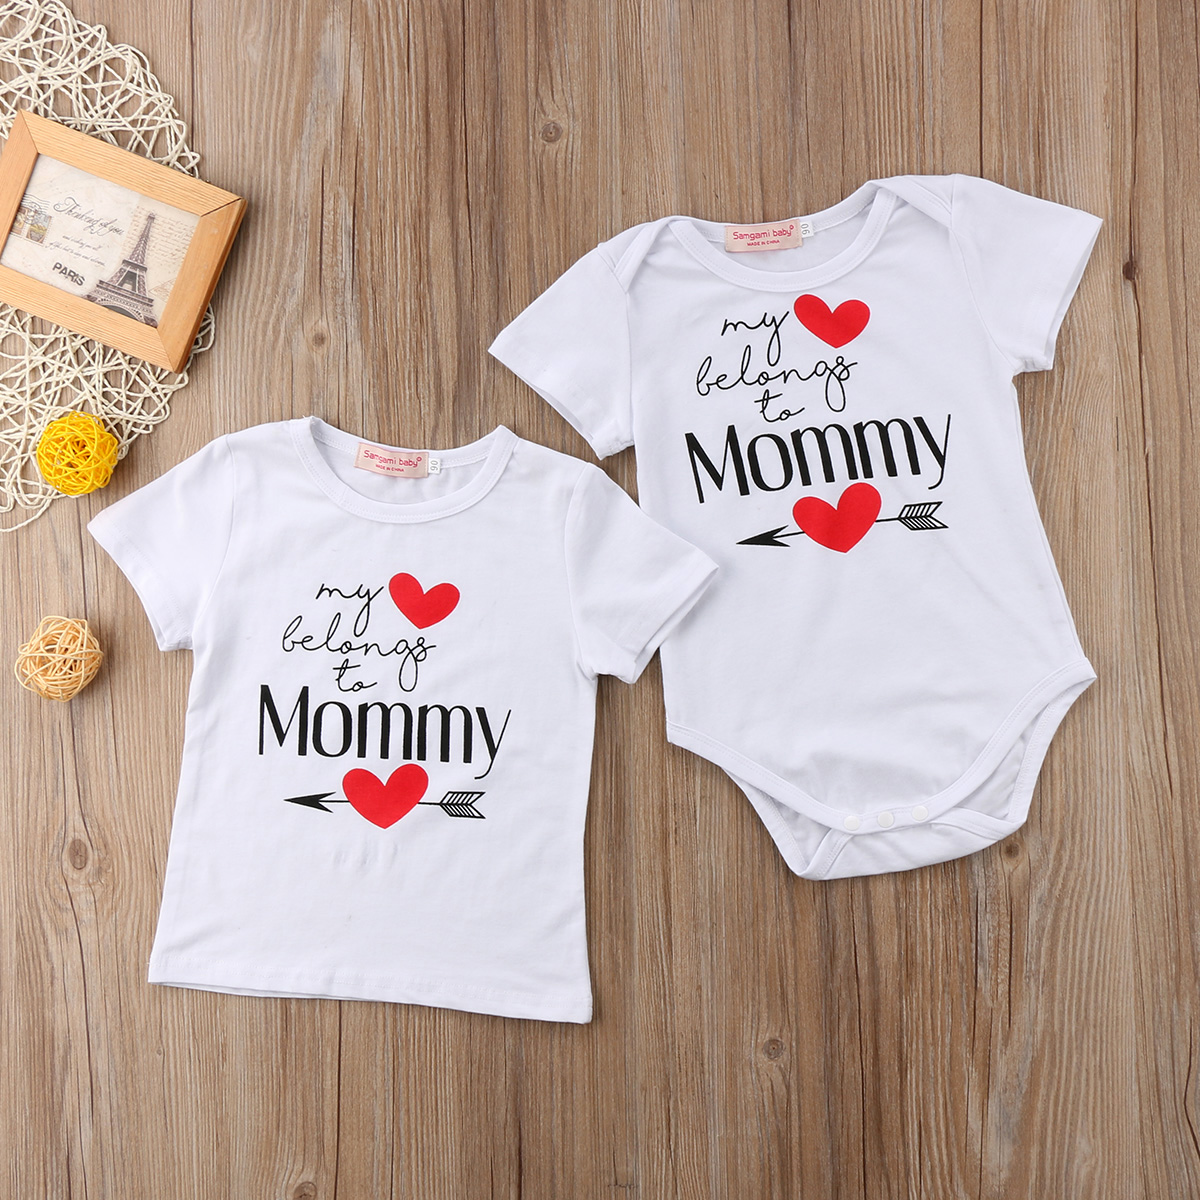 e64f062a 2018 My Heart Belongs to Mommy Printed Kids Baby Boy Girl T-shirt Family  Matching Bodysuit Clothes Tops White Summer Casual